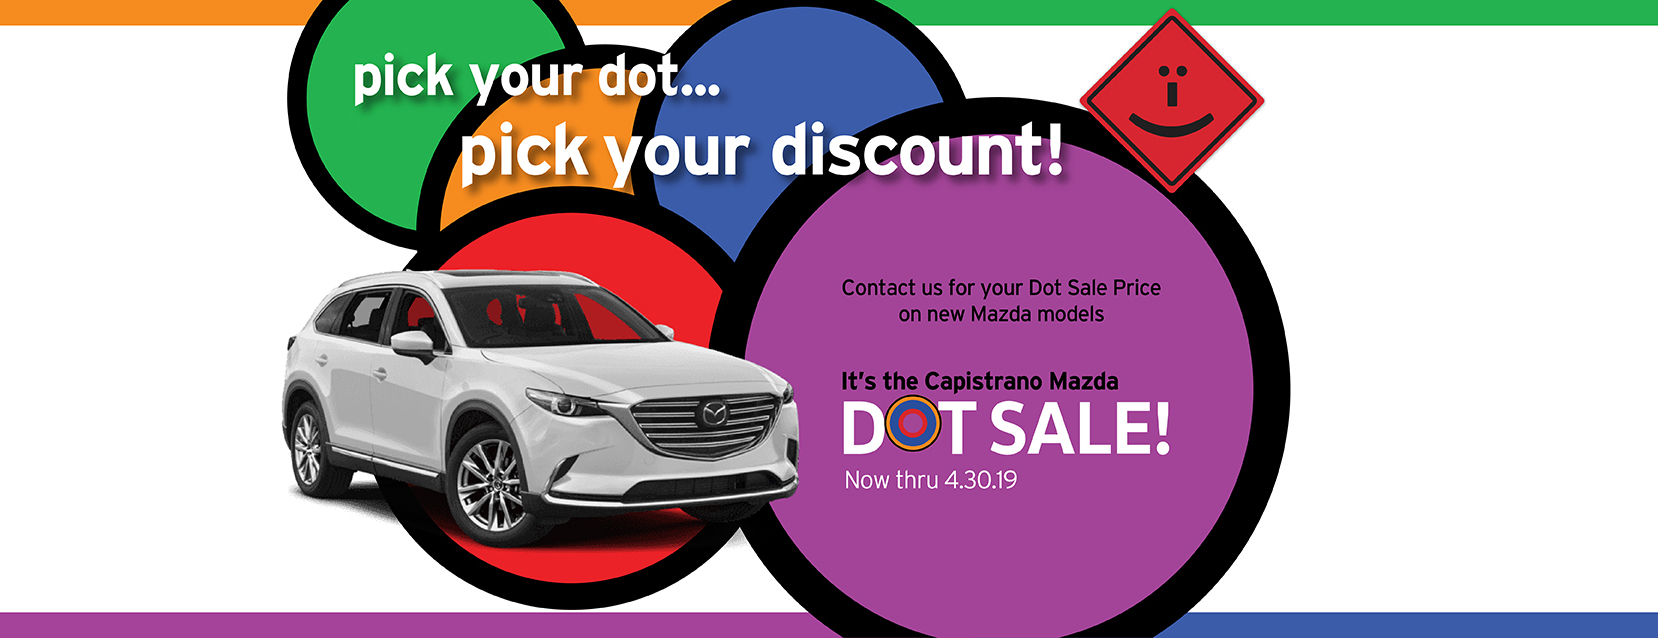 Contact us for your Capistrano Mazda Dot Sale discount!